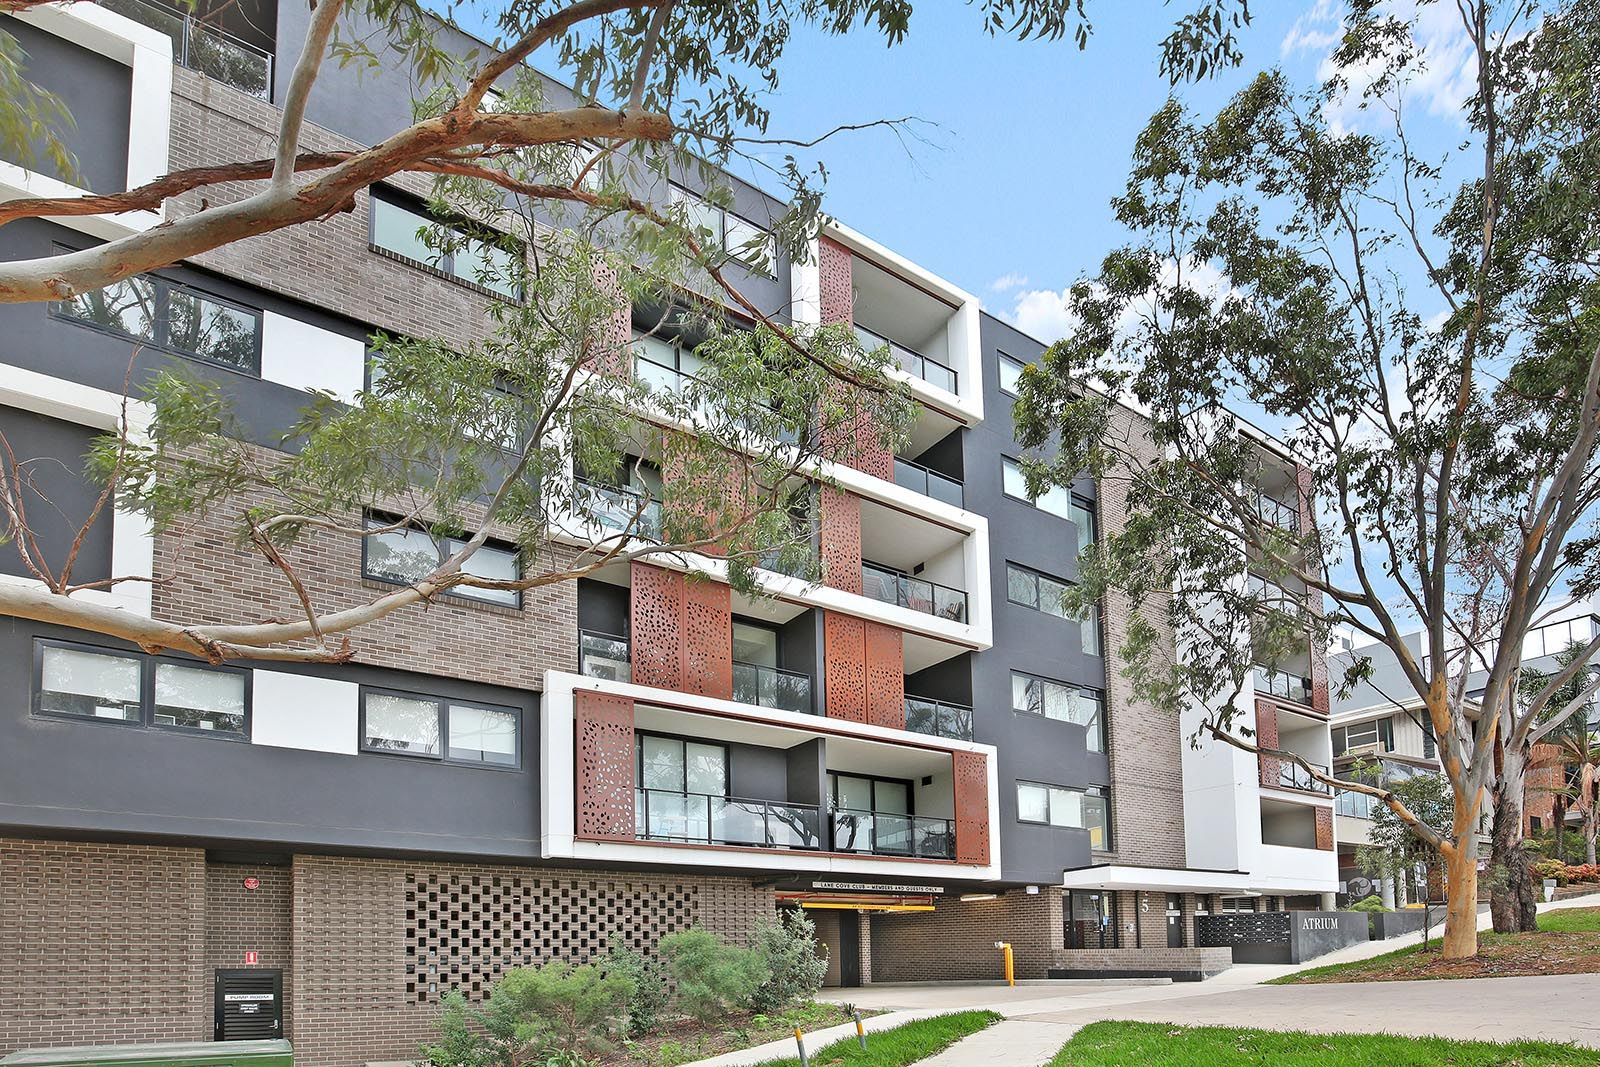 402/3-7 Birdwood Avenue, Lane Cove NSW 2066, Image 0